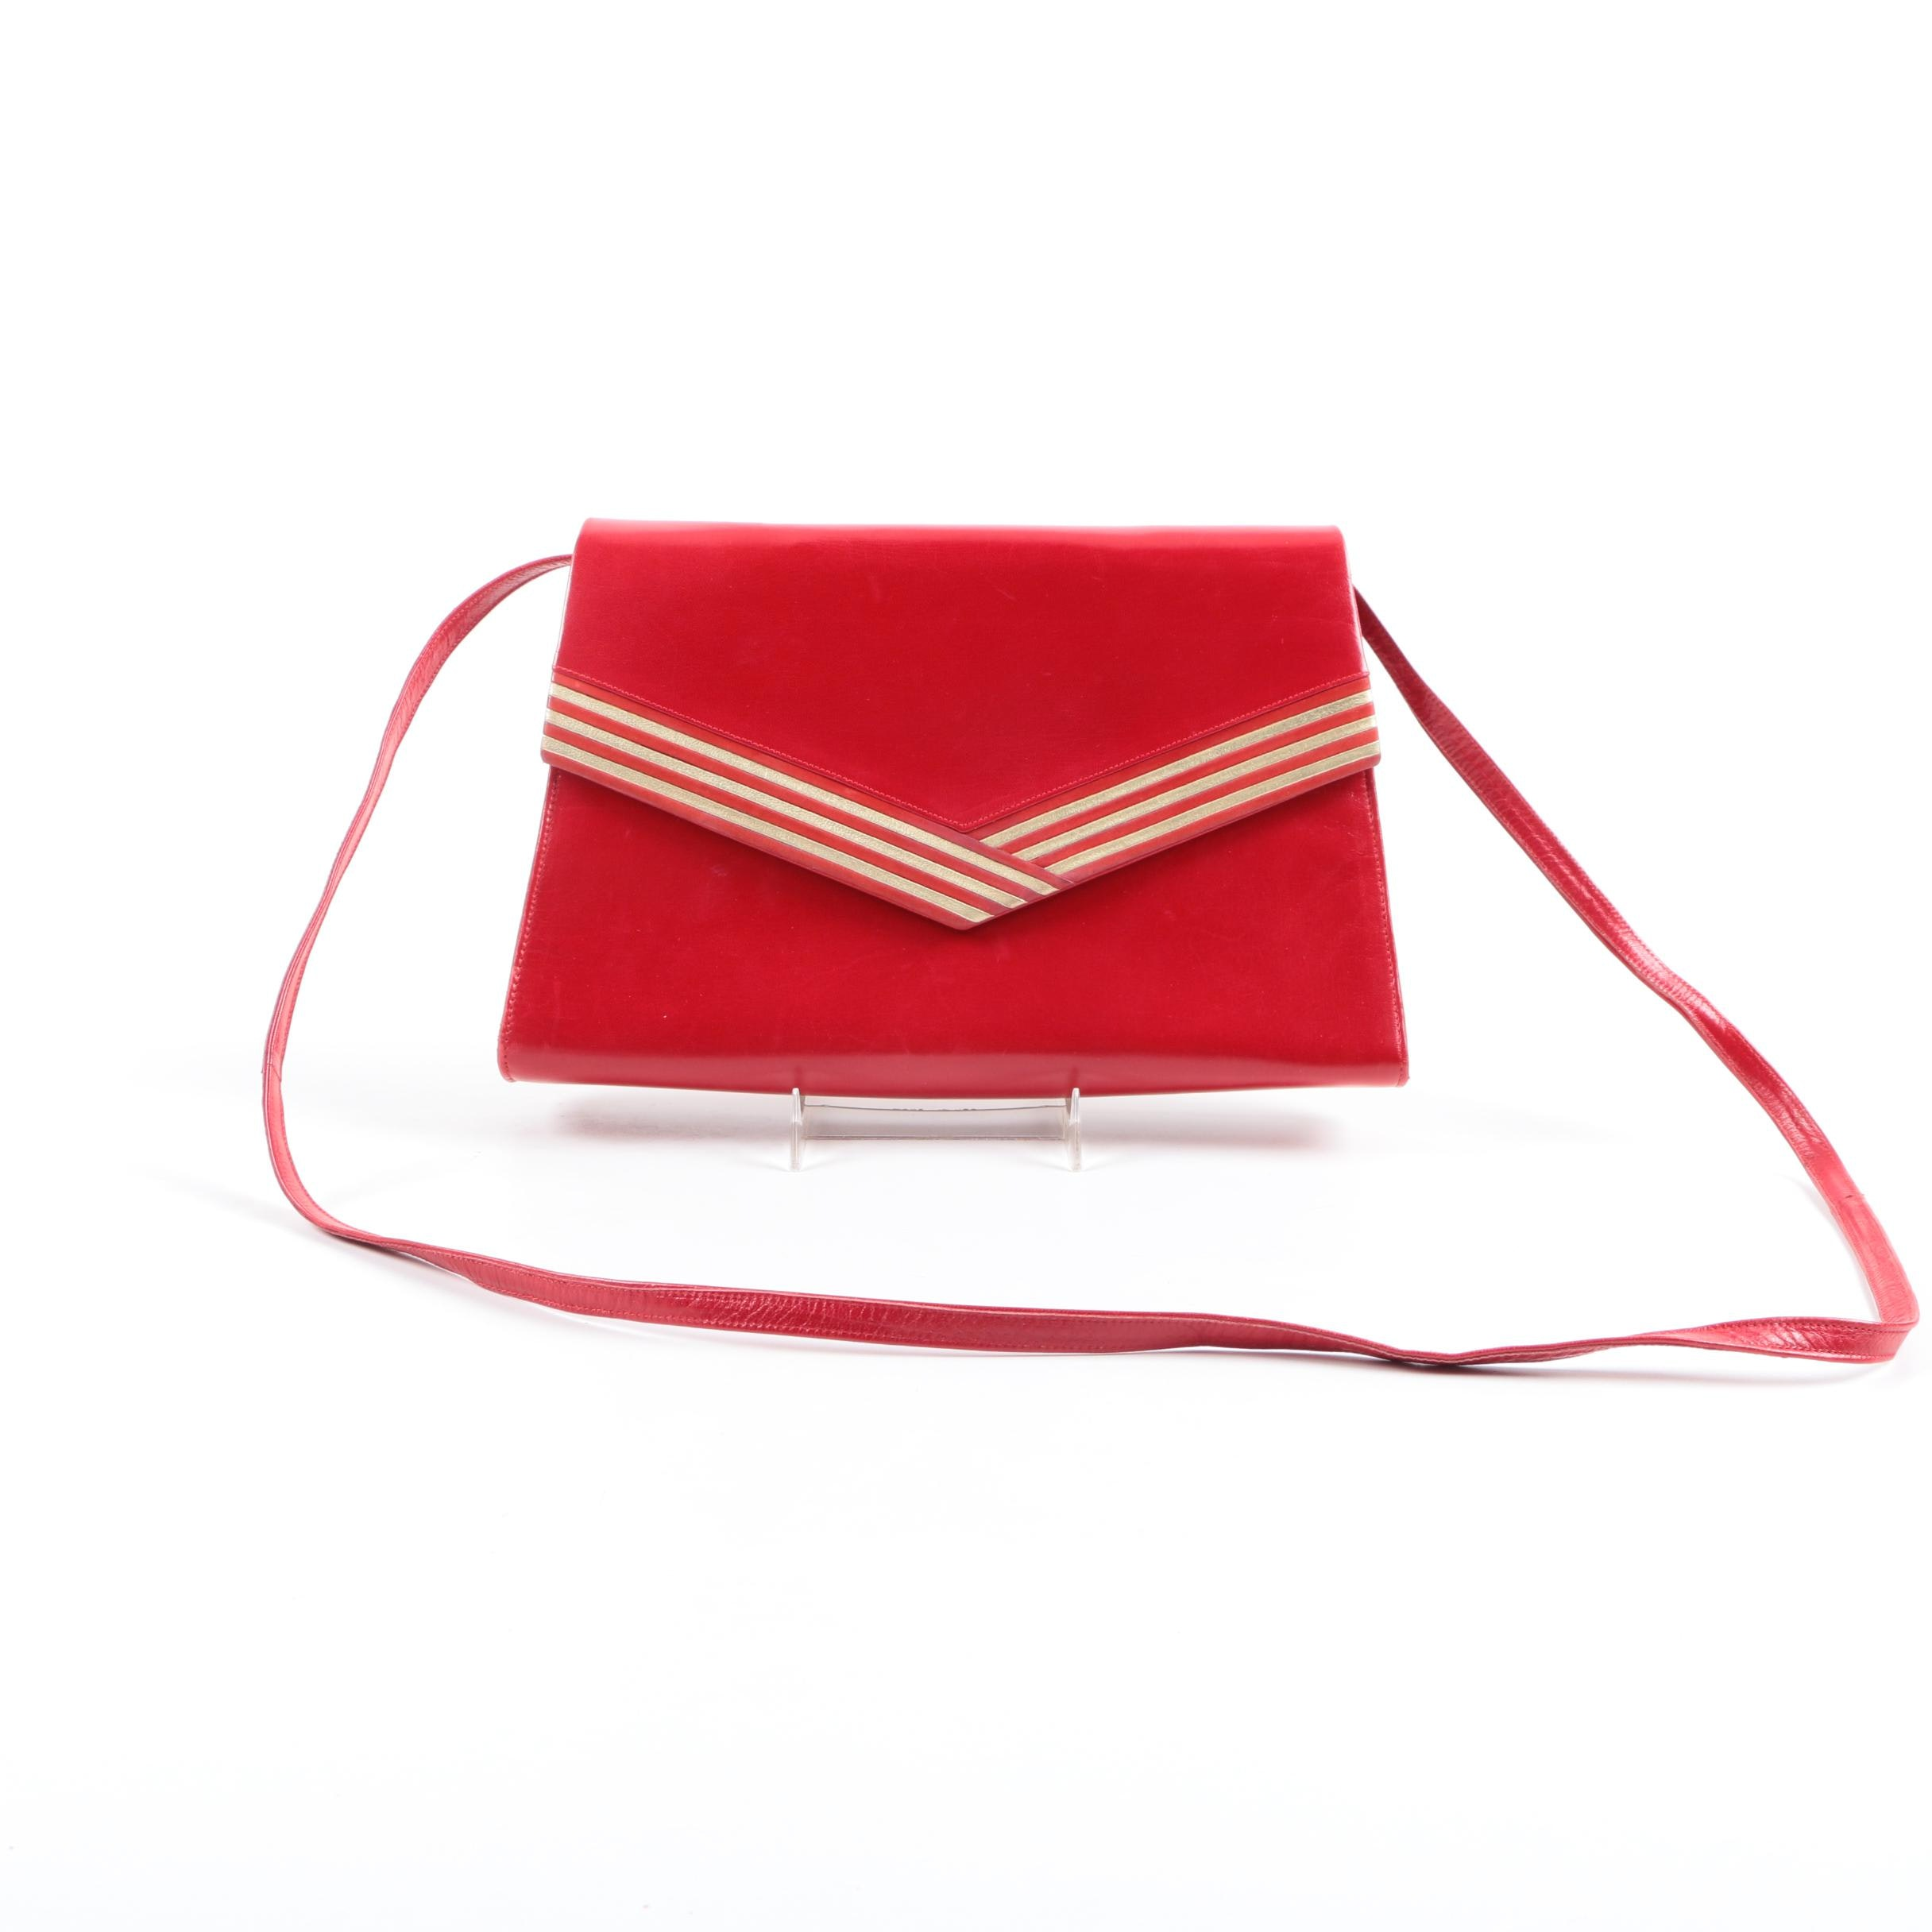 Vintage Bally Red Leather Crossbody Bag